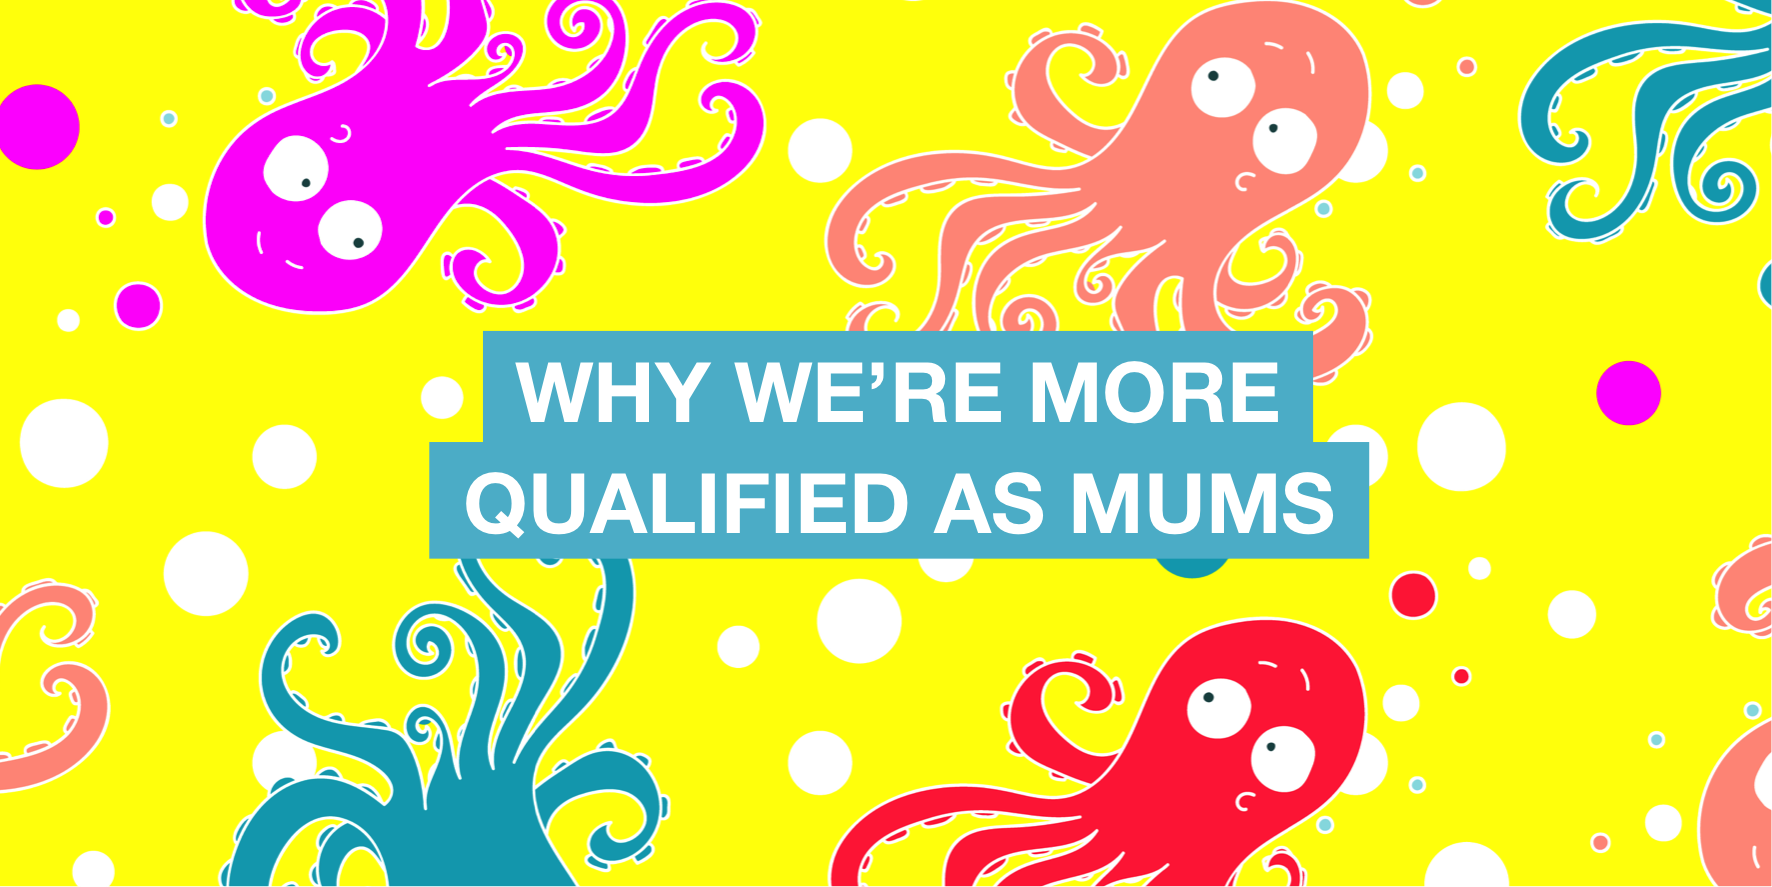 Why we're more qualified as mums